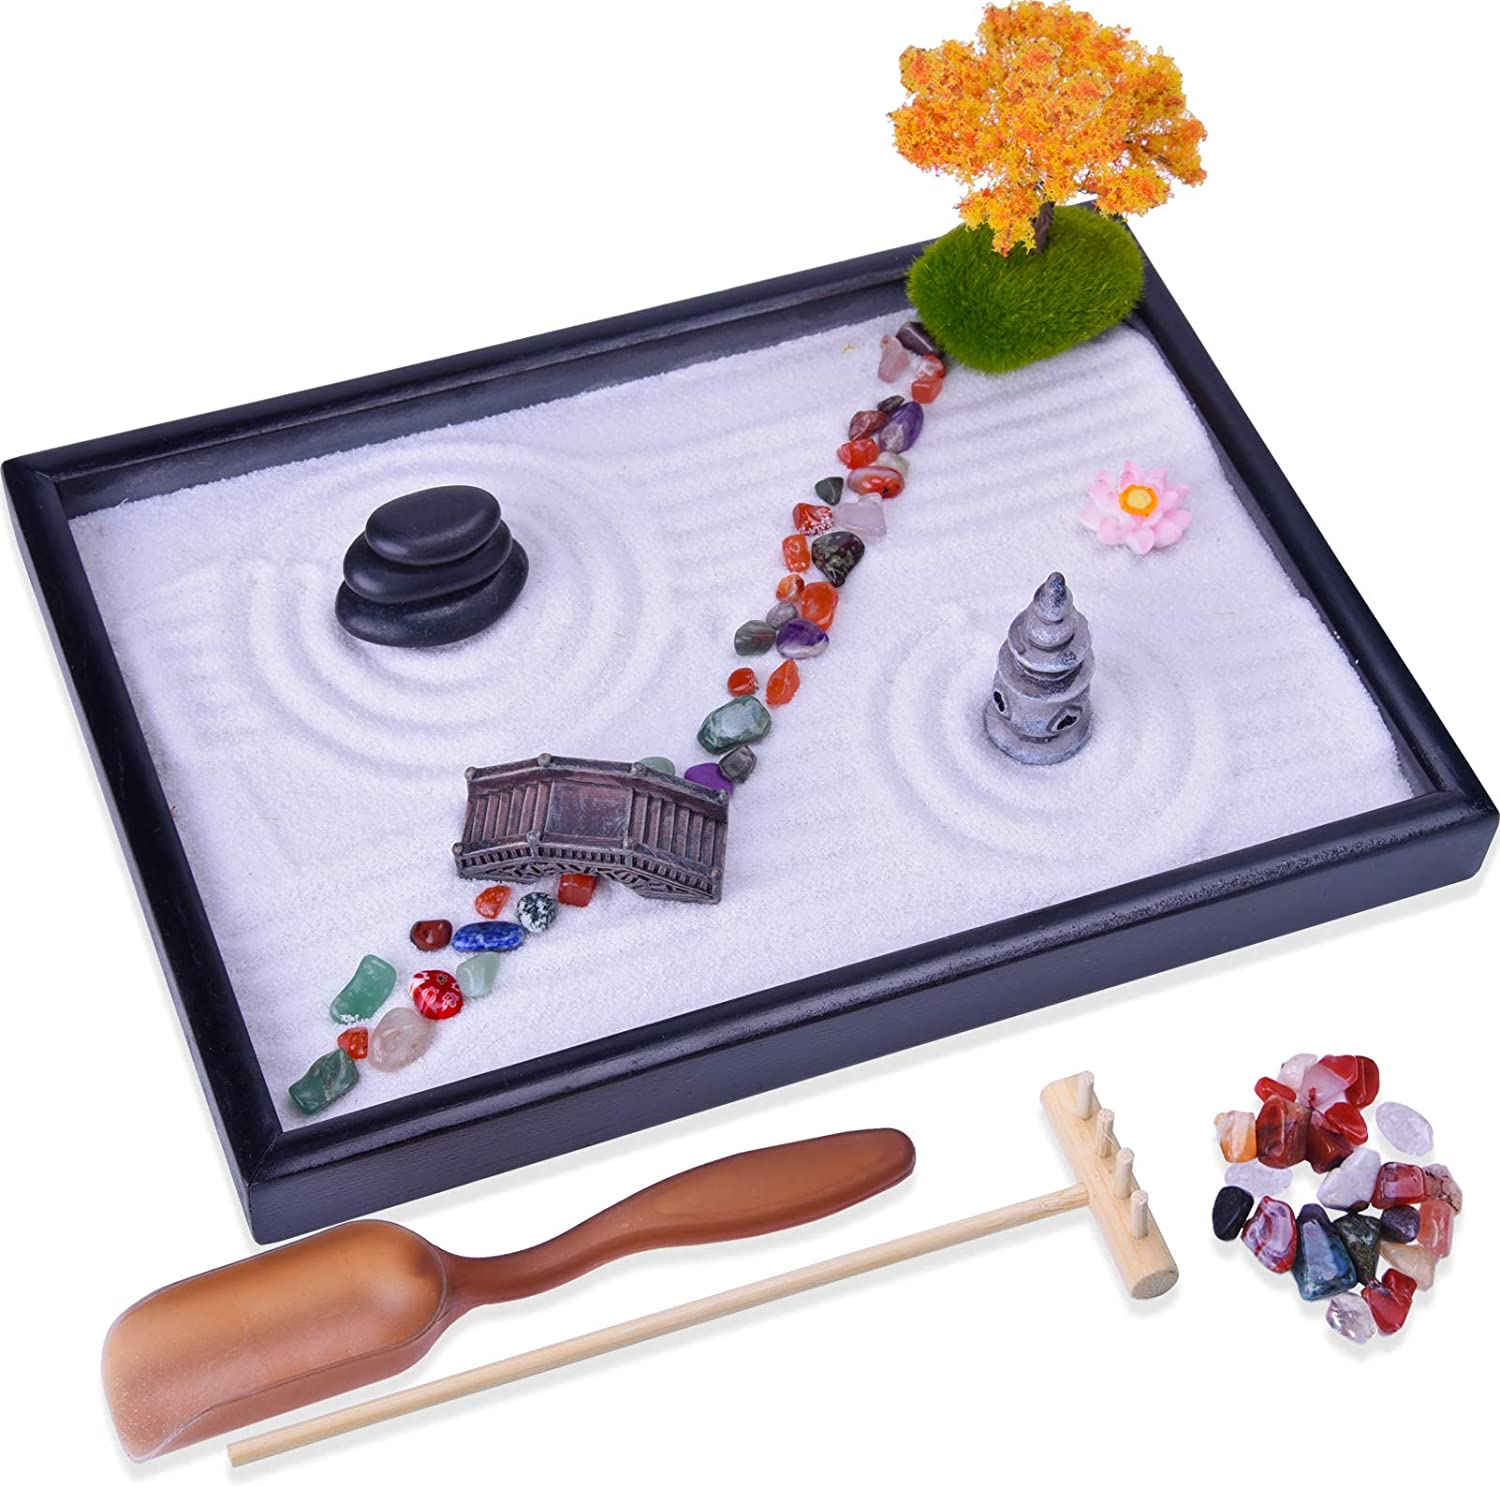 Japanese Zen Garden Kit - Mini Garden with Rock Bridge PagodaMaple Trees Colorful Agate Stones - Meditation Gift Set for Relaxation - Home & Office Desk Decor with Rake Tools and Zen Accessories